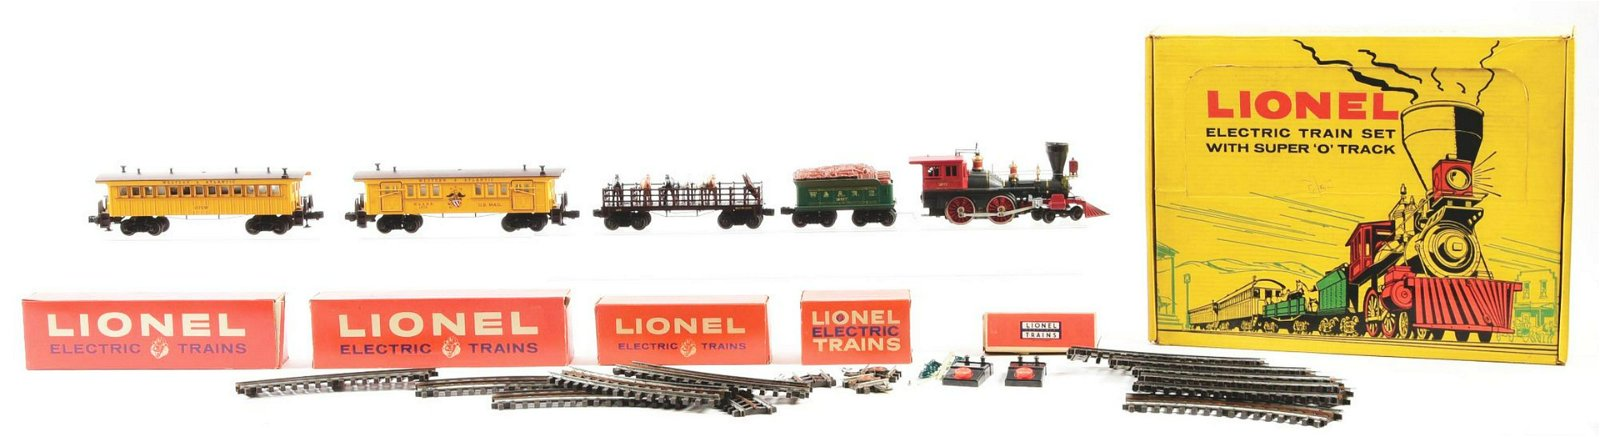 Lionel Train 2528WS Boxed General Set.